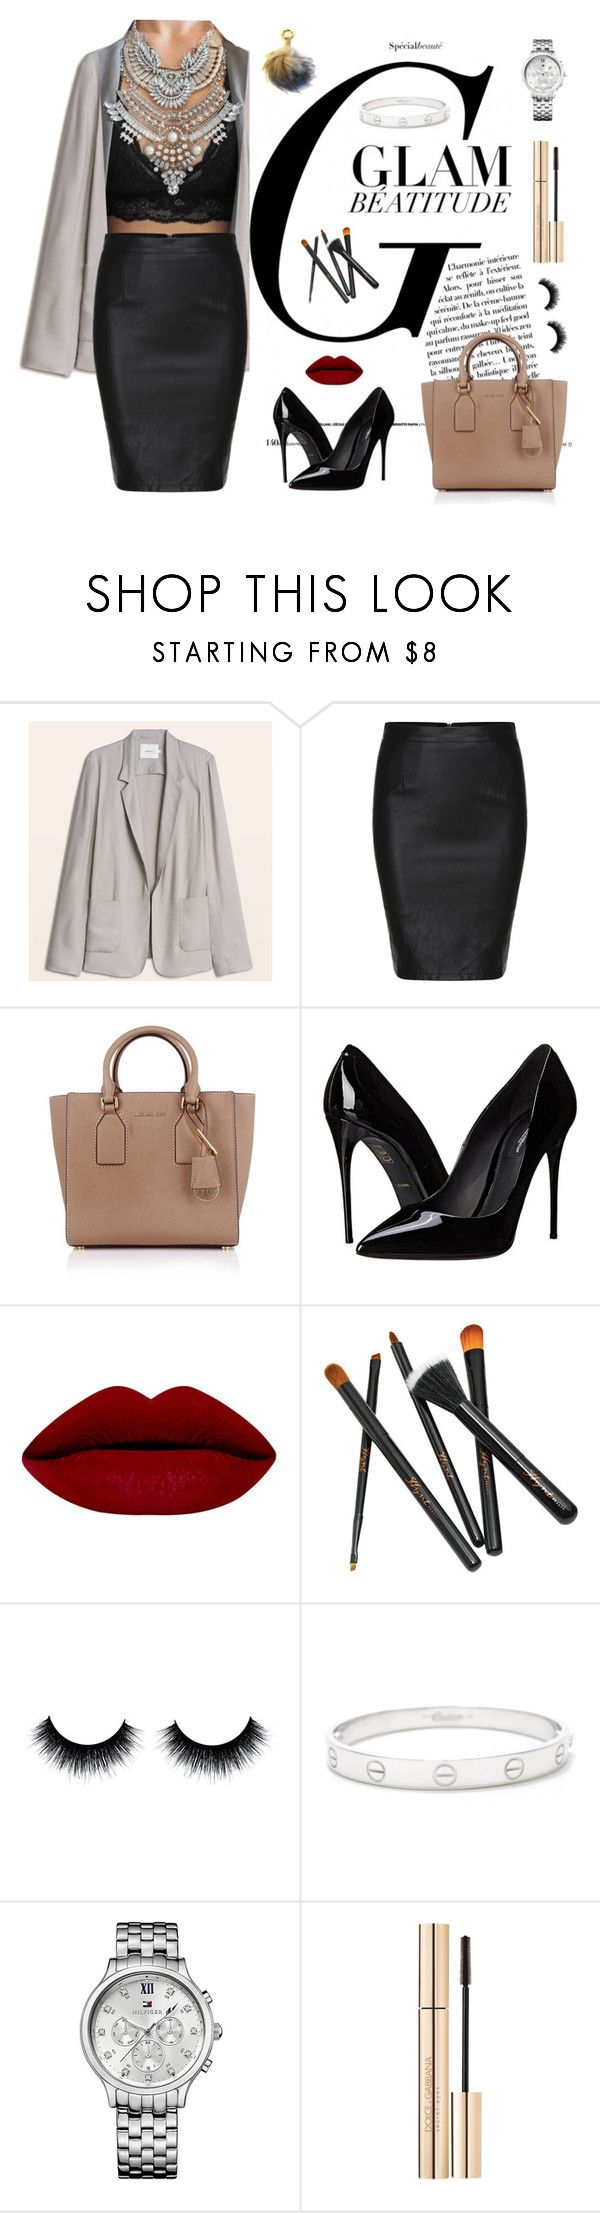 """""""Business glam including two of my own products from styleloft.dk"""" by shop-styleloft on Polyvore featuring Michael Kors, Dolce&Gabbana, Cartier and Tommy Hilfiger"""